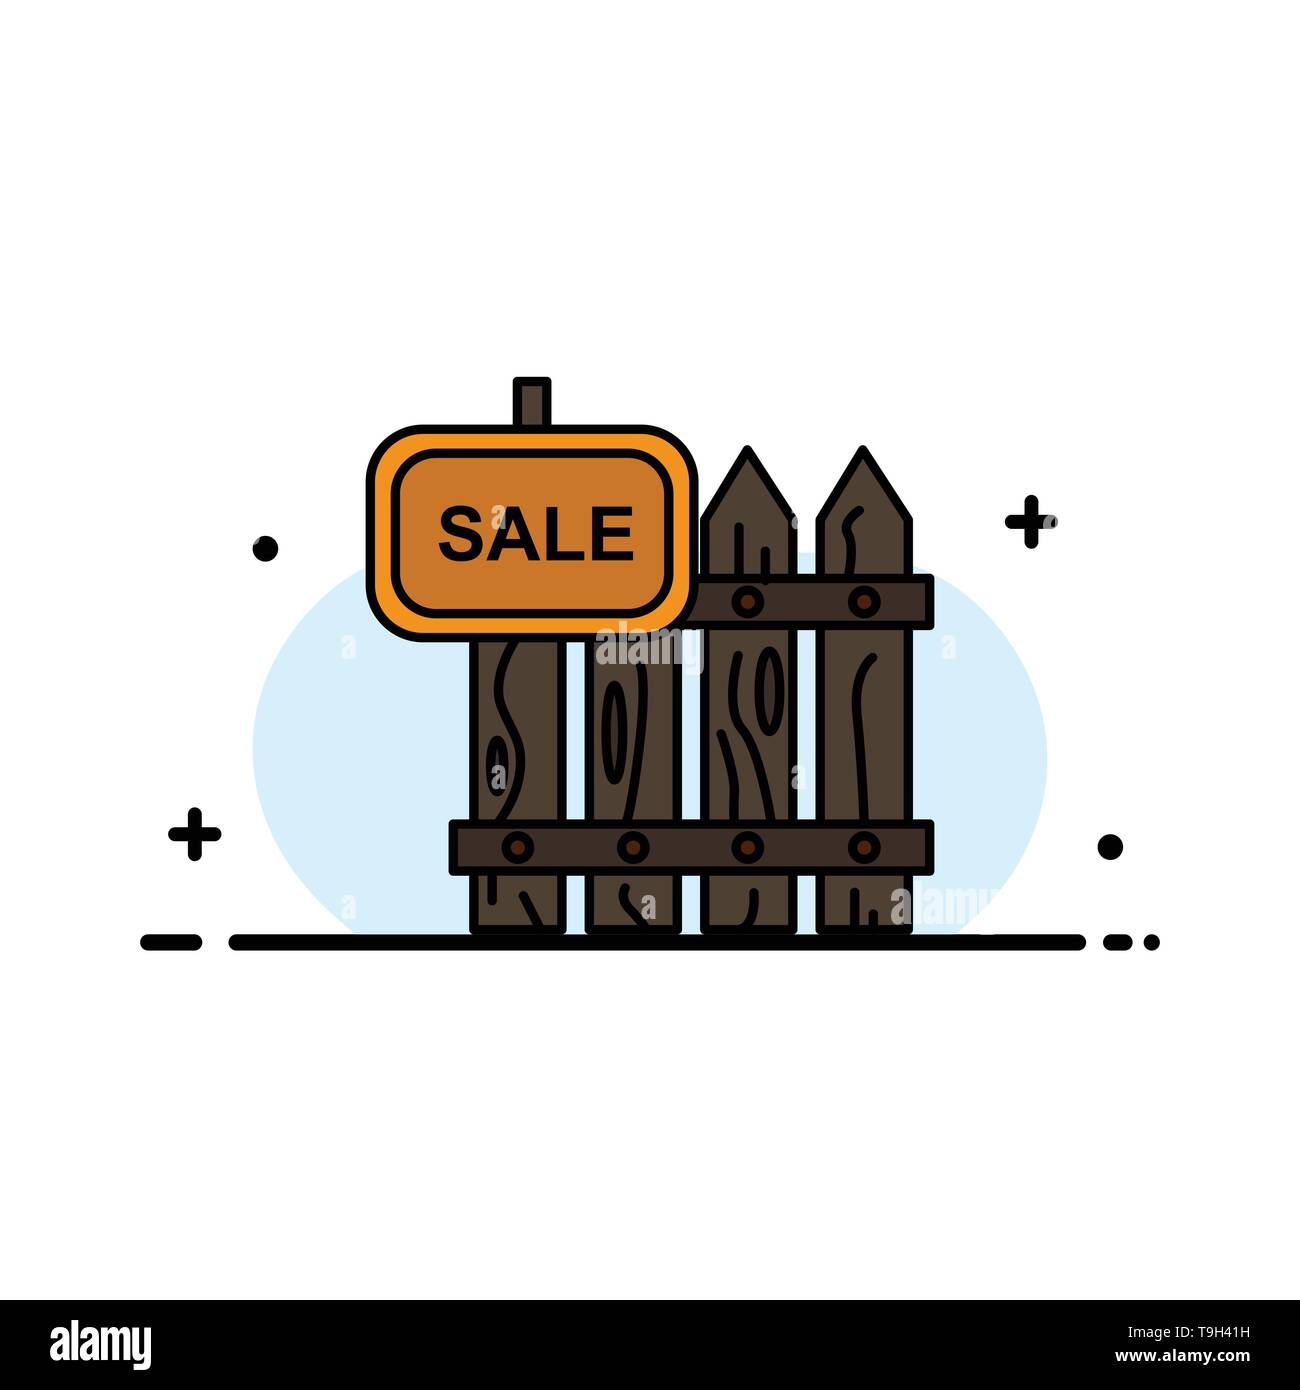 Fence, Wood, Realty, Sale, Garden, House  Business Flat Line Filled Icon Vector Banner Template - Stock Image